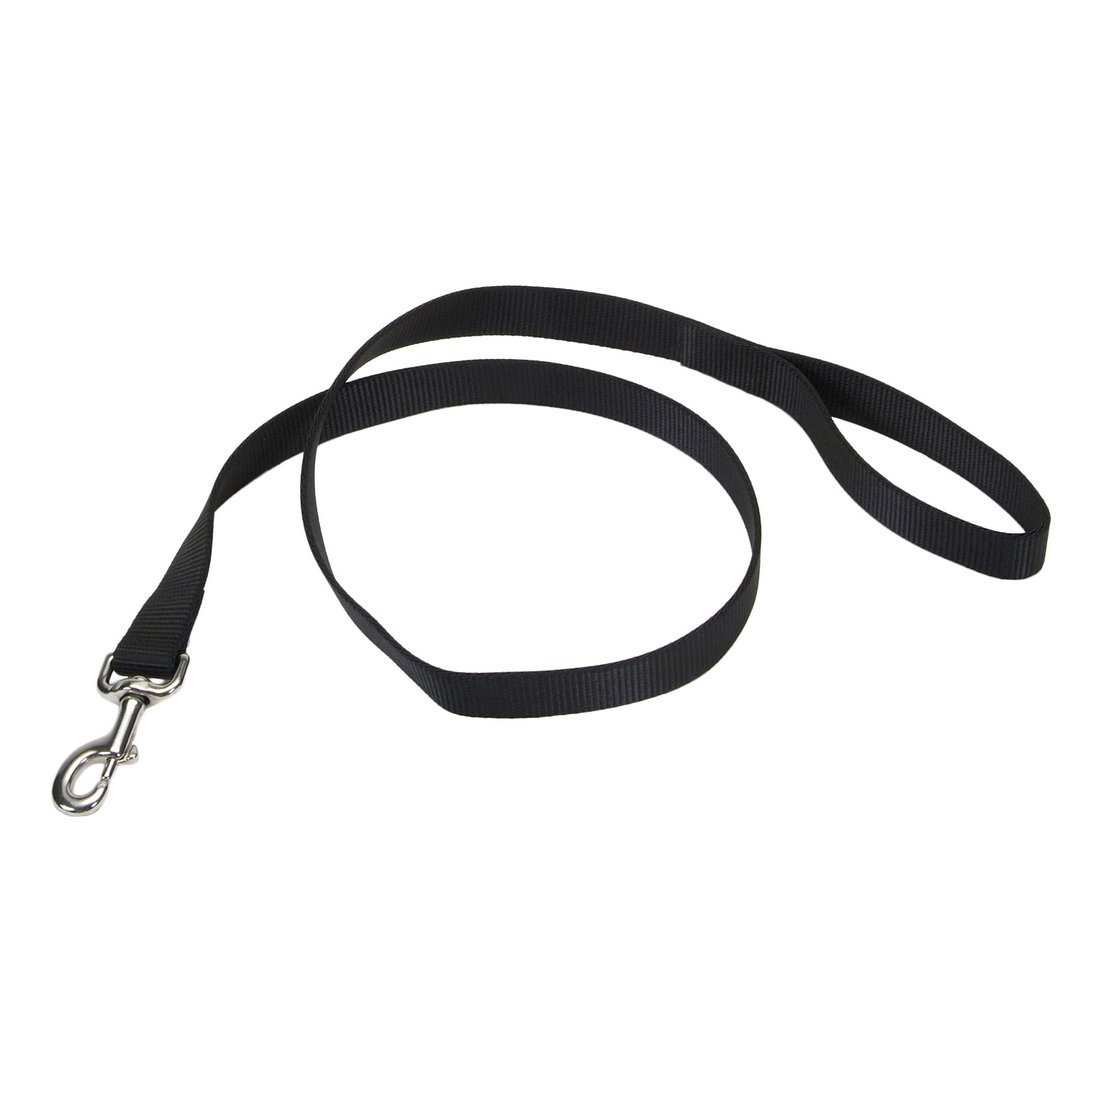 hollywood-feed-nylon-lead-3-8-black